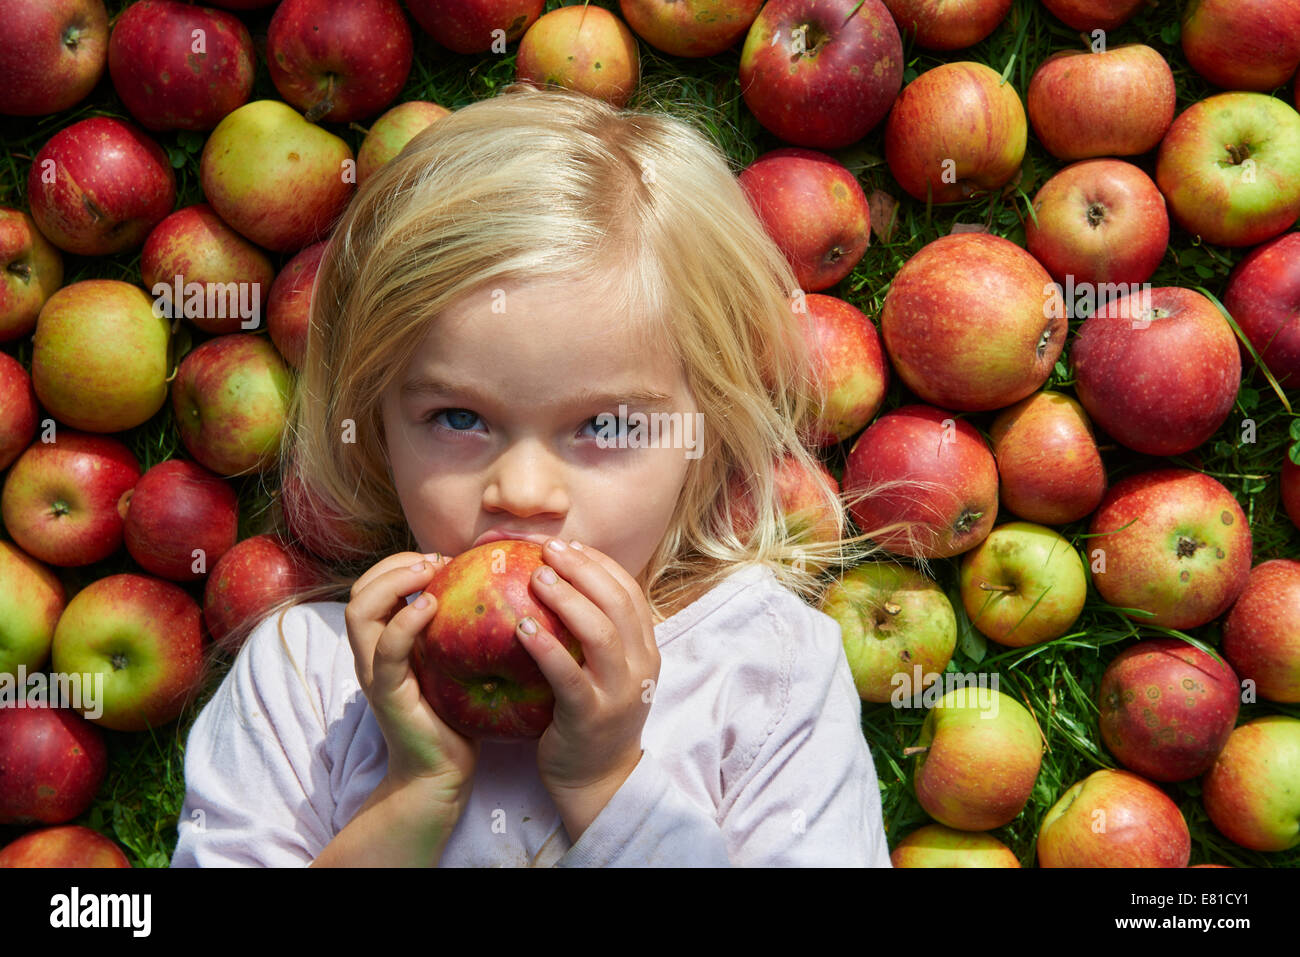 Portrait of child blond young girl lying and eating on the grass with apples background, lies Stock Photo